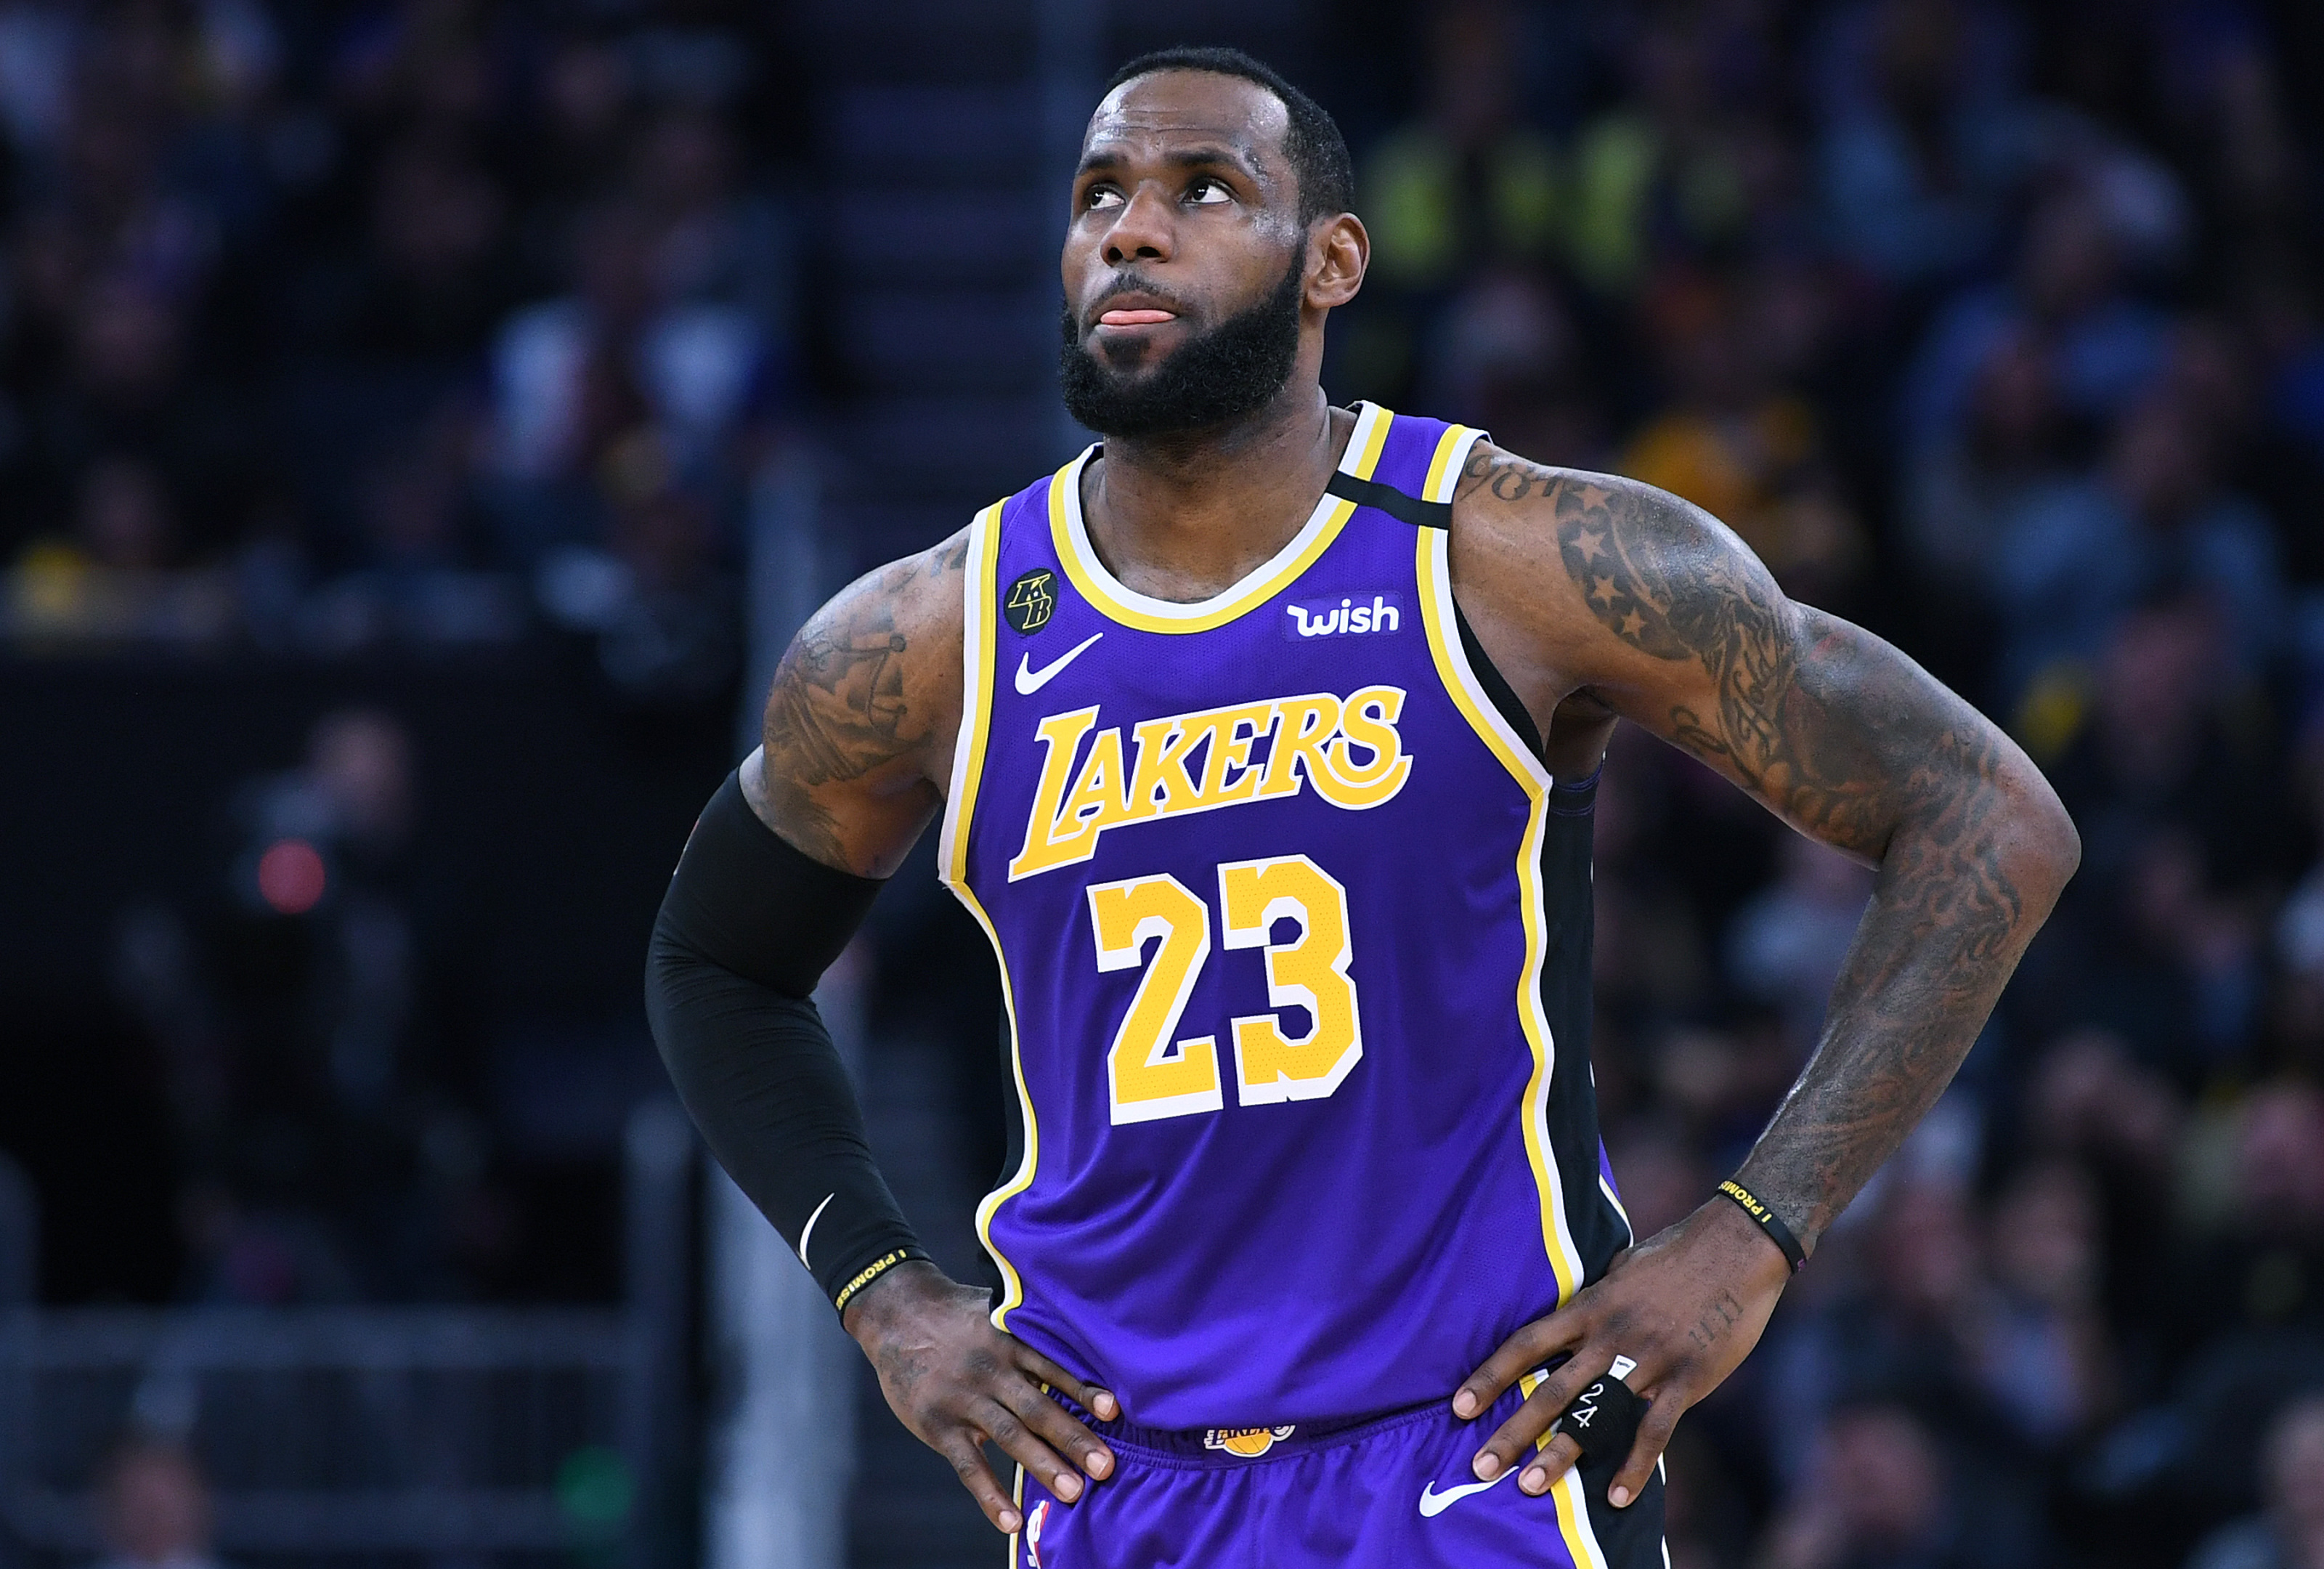 Los Angeles Lakers: Has LeBron James improved defensively?